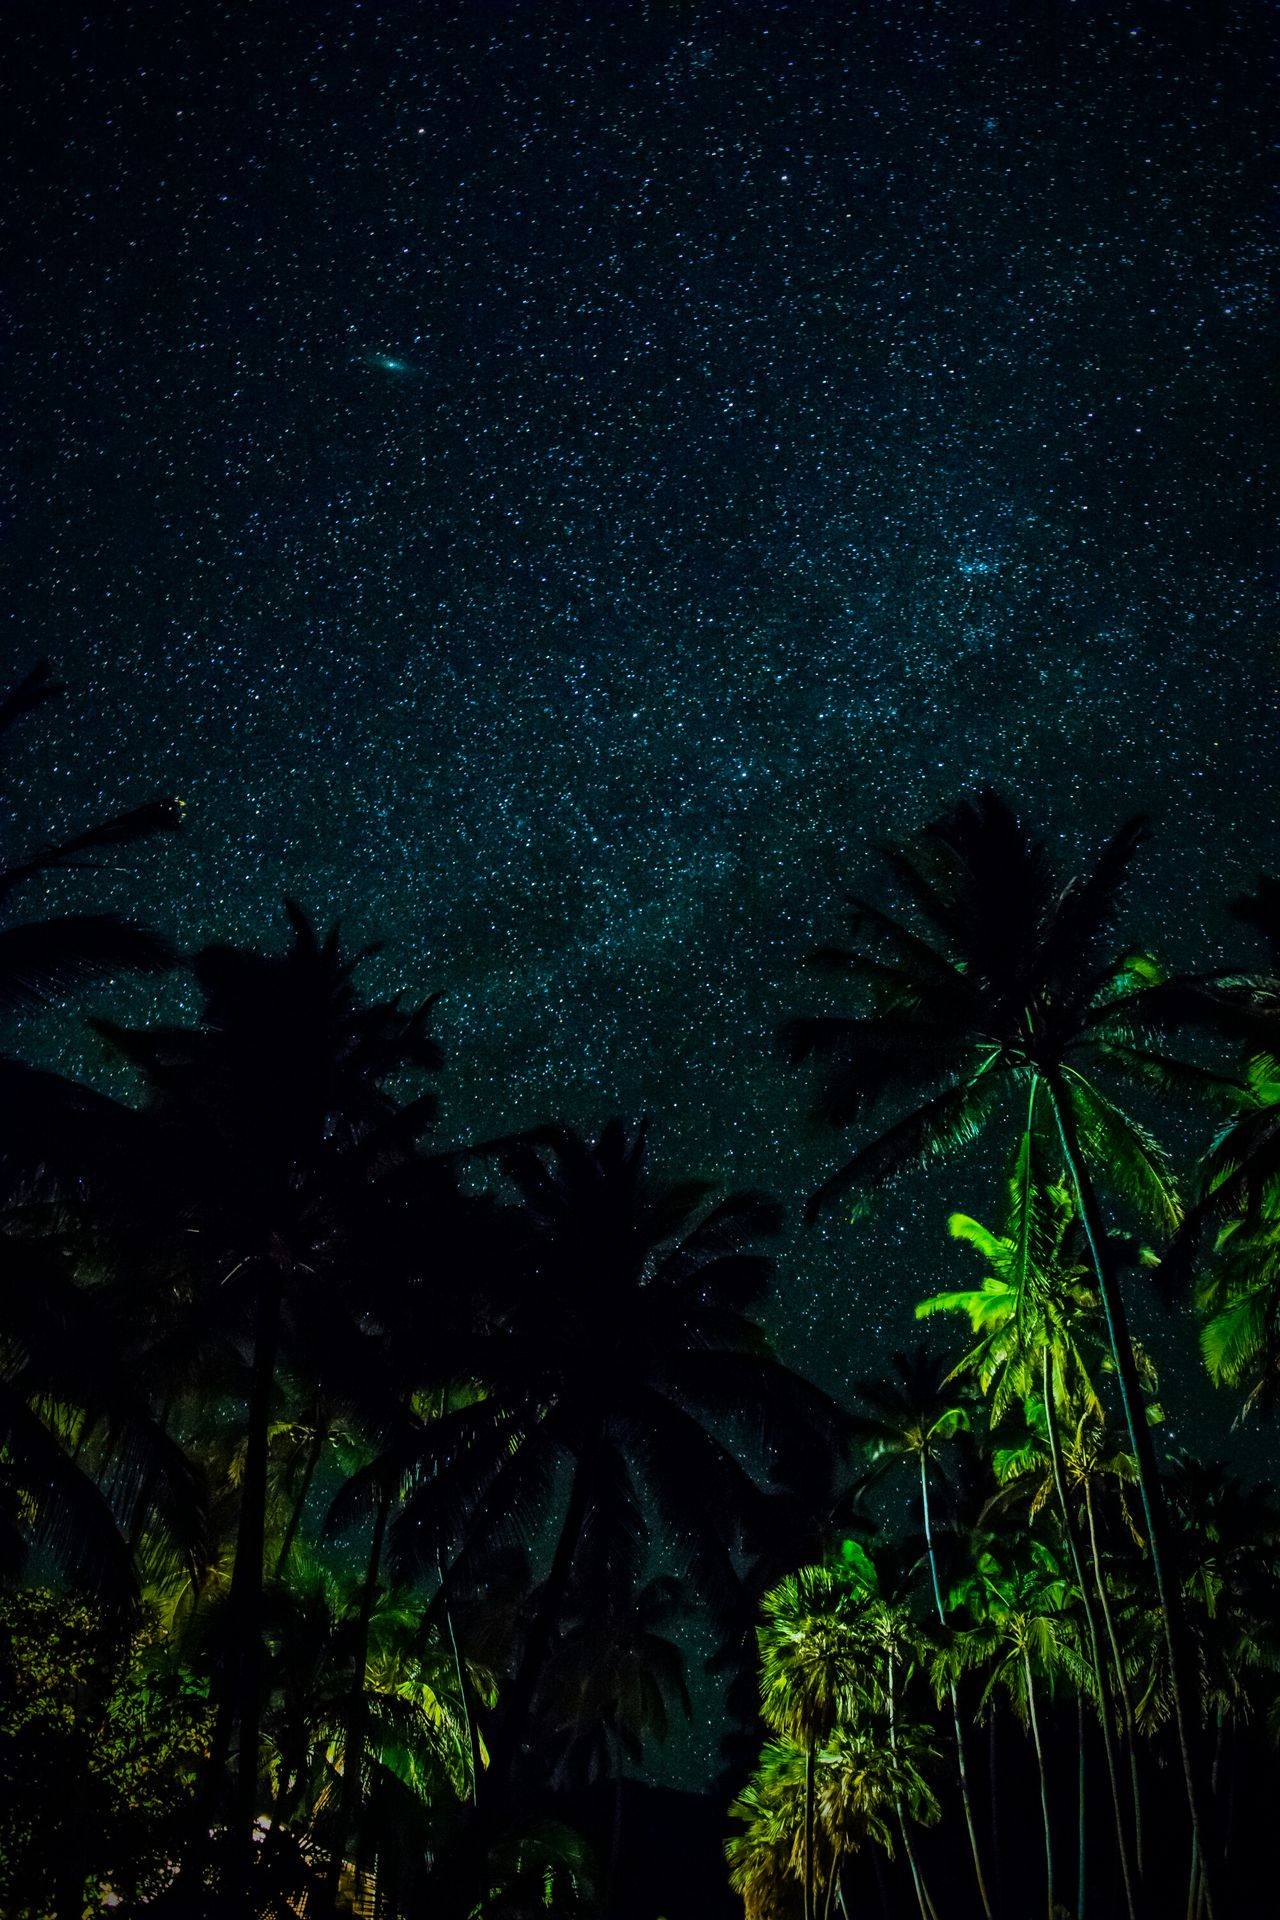 Long Exposure Sky Night Tree Star - Space Astronomy Nature Space And Astronomy Beauty In Nature Palm Tree Space Scenics Star Field Hawaiishots Hawaii Big Island Love From My Point Of View Big Island Hawaii Landscape_Collection Big Island Landscape_photography Milky Way